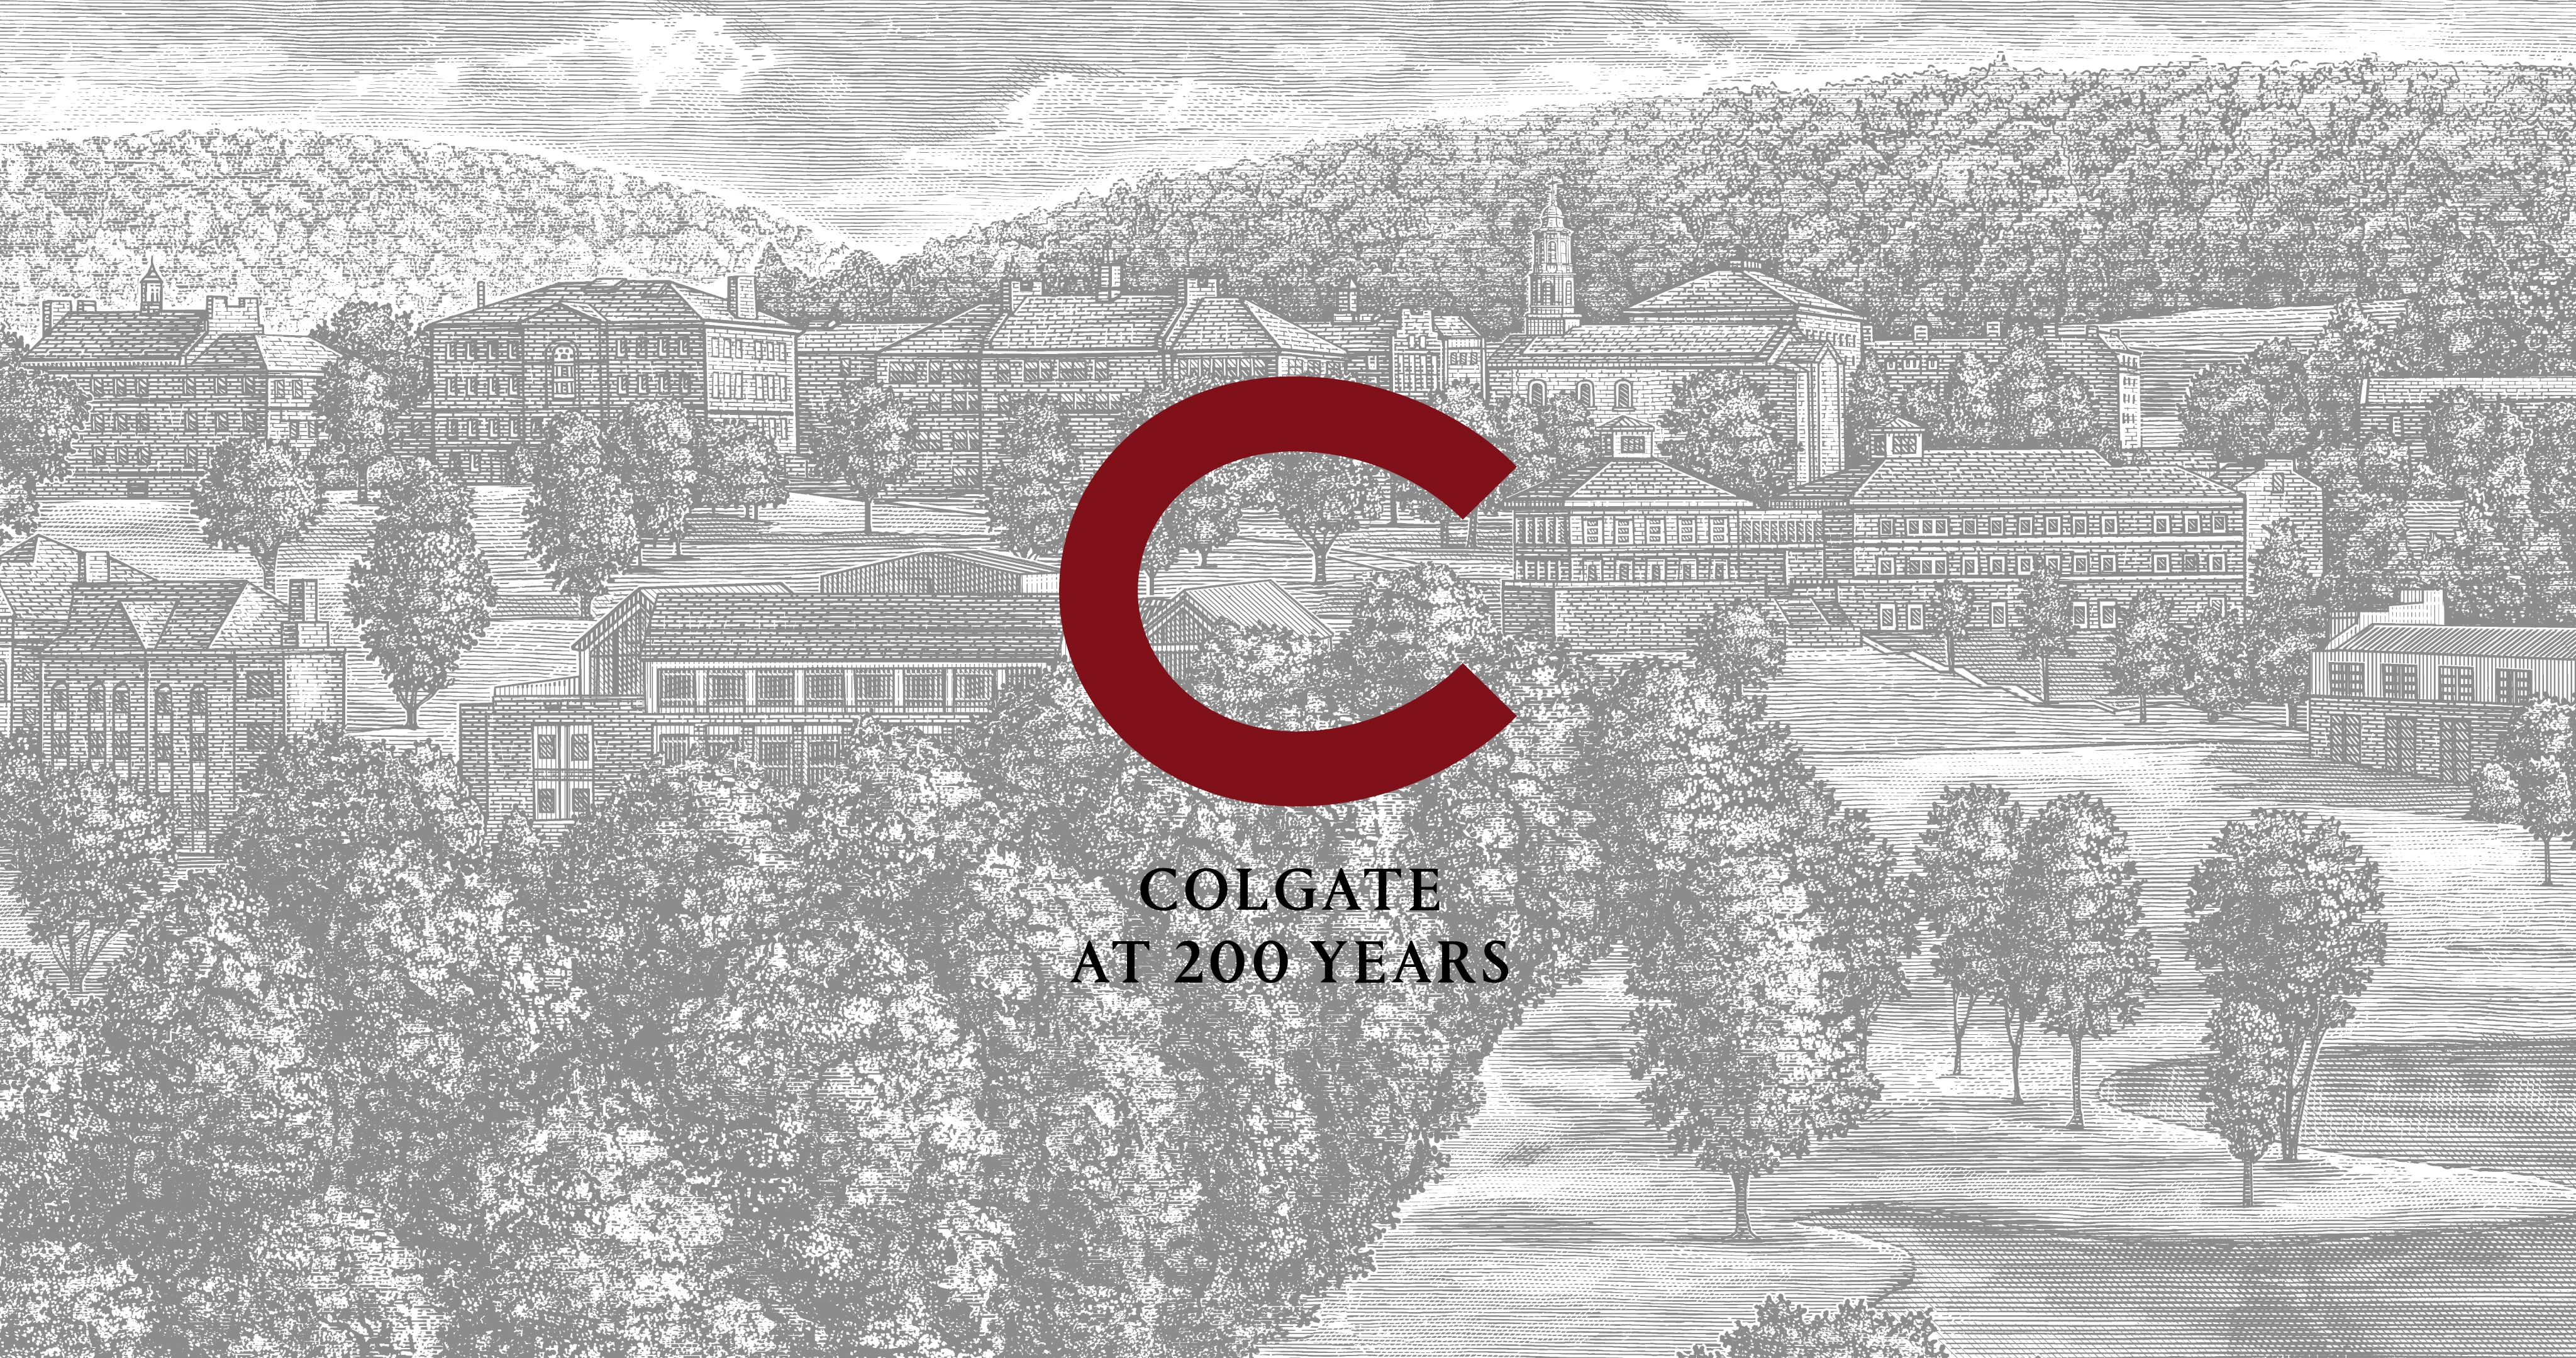 Colgate at 200 Years and logo over a light-themed illustration of campus